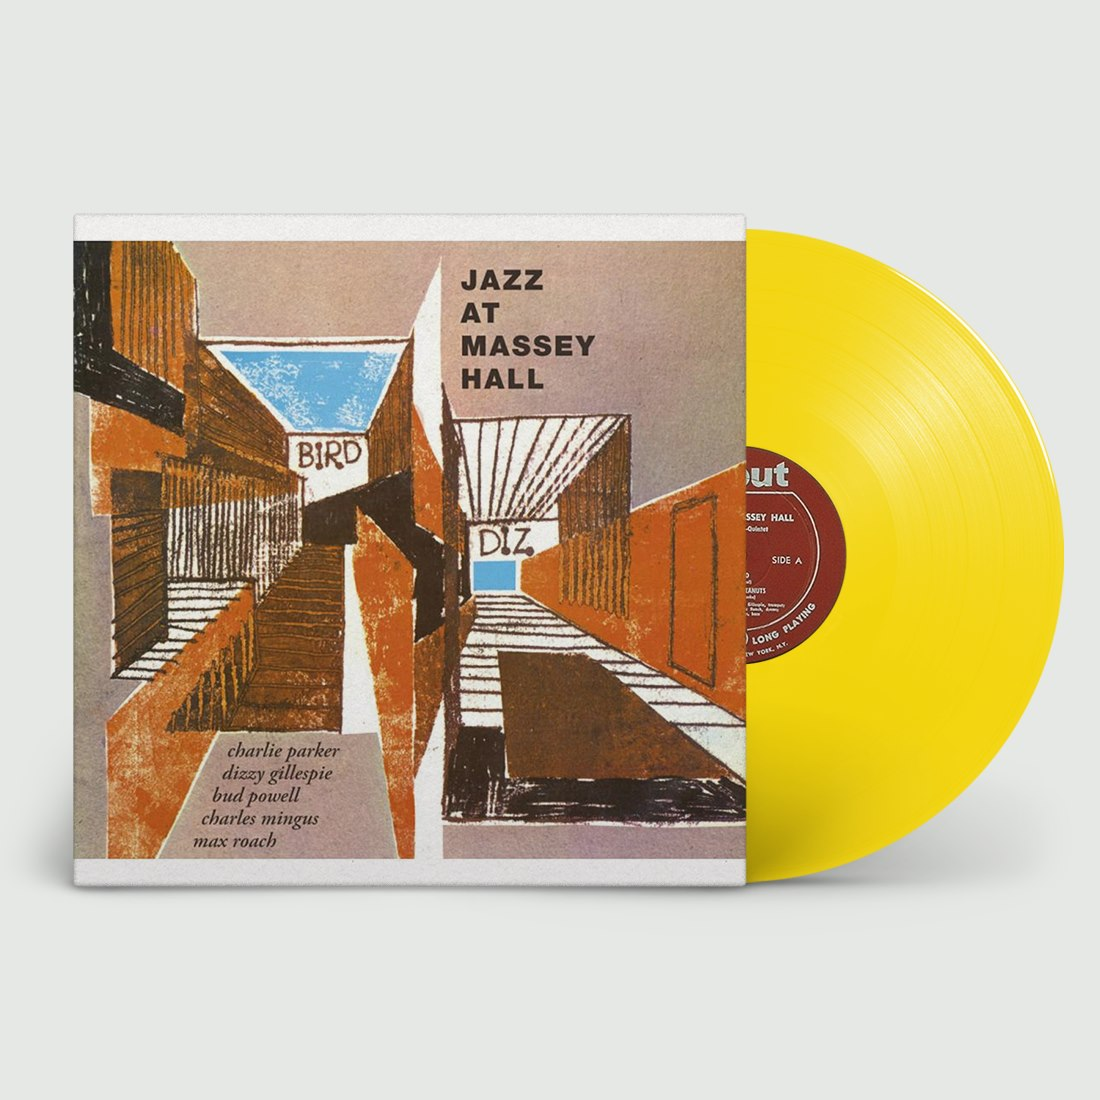 Charlie Parker Featuring Dizzy Gillespie, Bud Powell, Charles Mingus, Max Roach Jazz At Massey Hall (LP) 2020